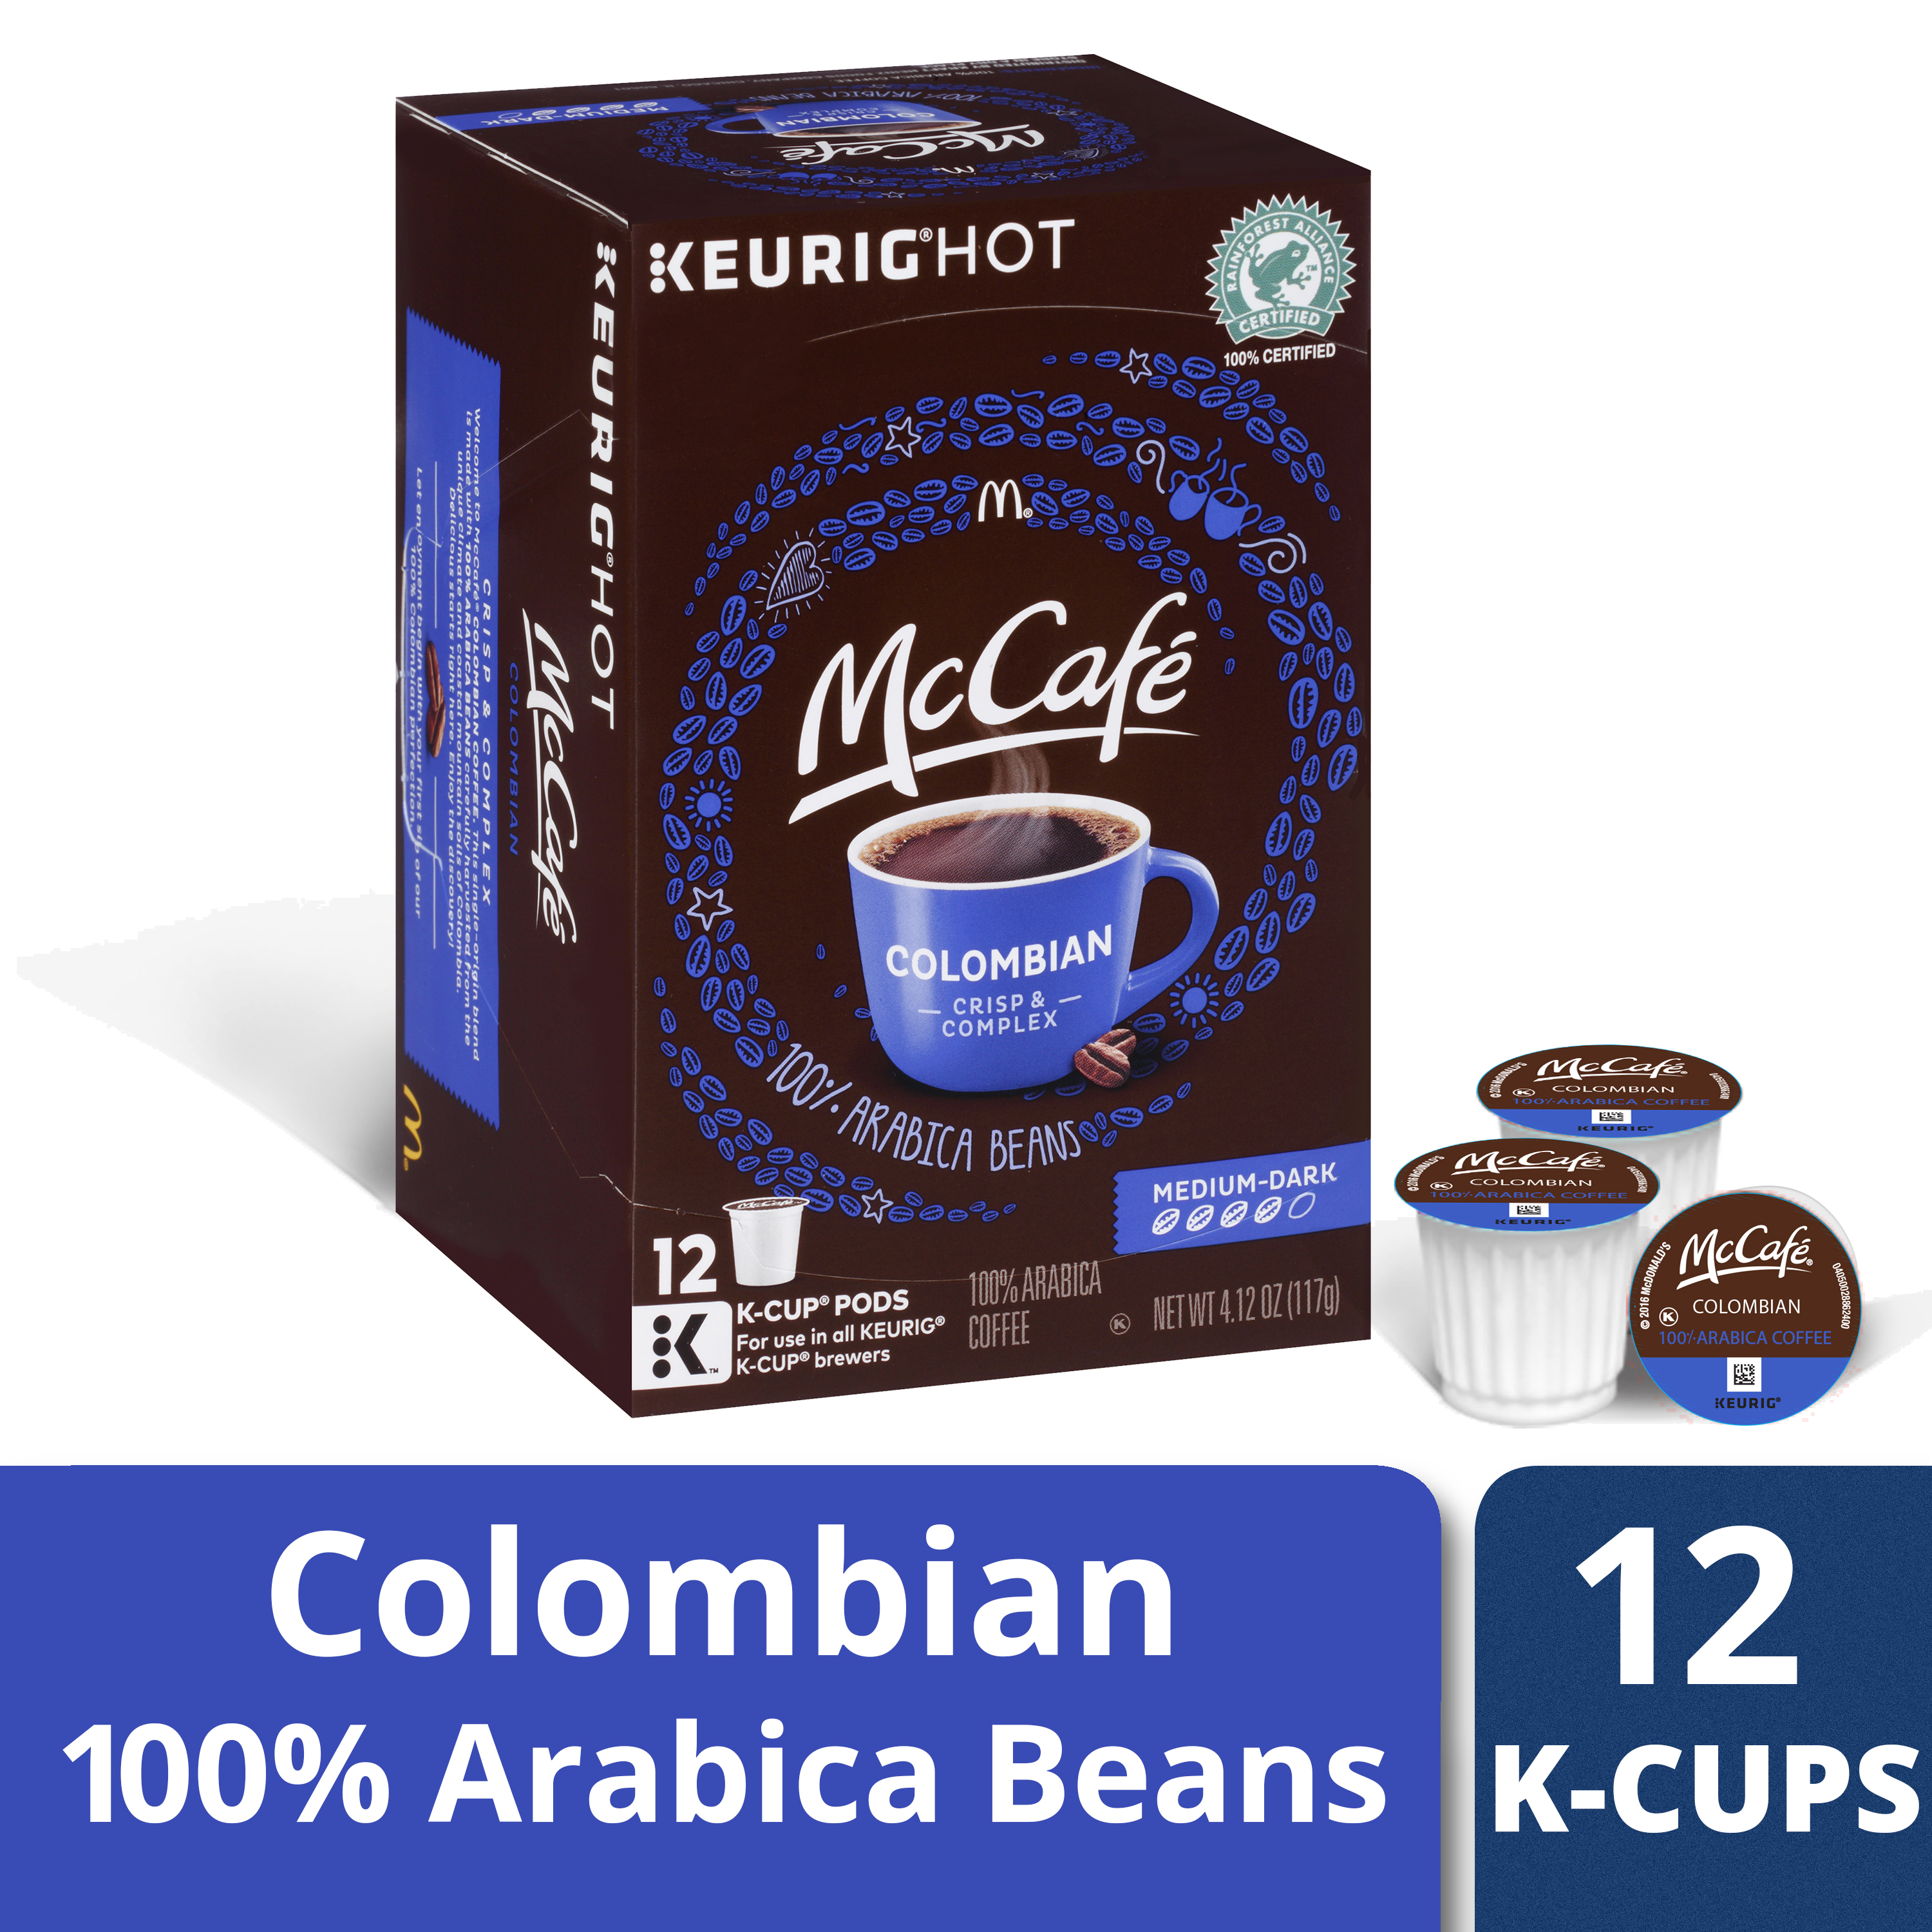 McCafé Colombian Coffee K-Cup Pods, 12 count